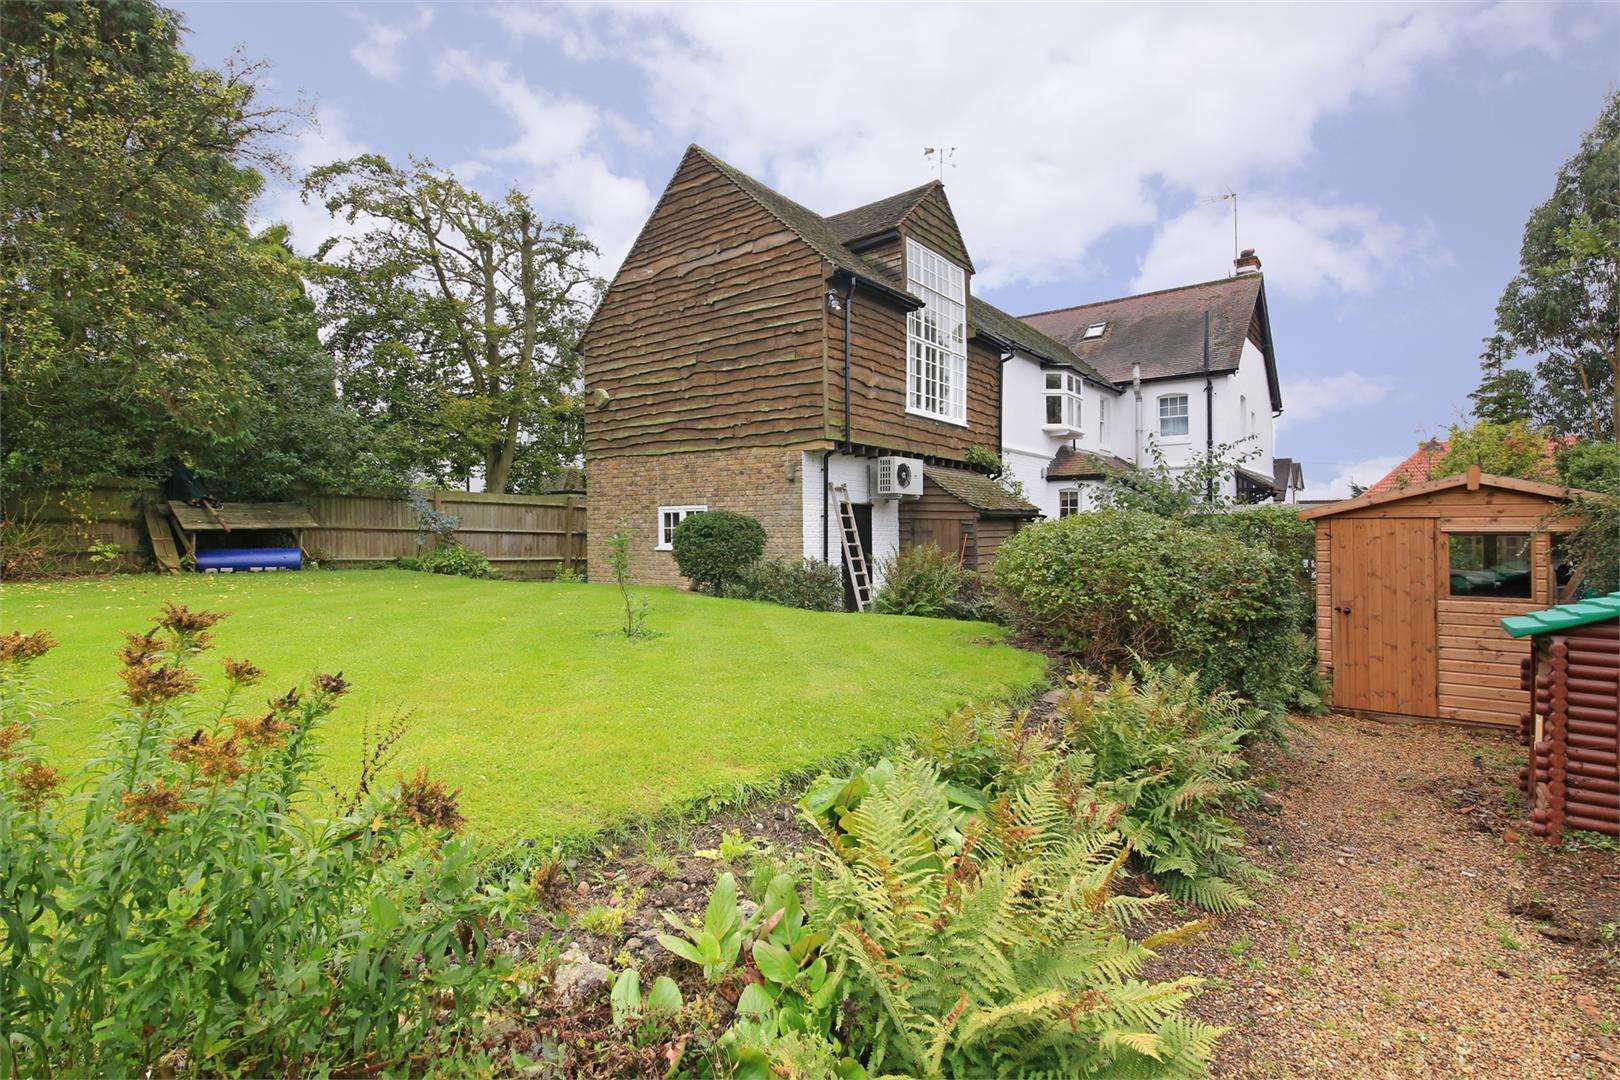 5 bed to rent - (Property Image 17)